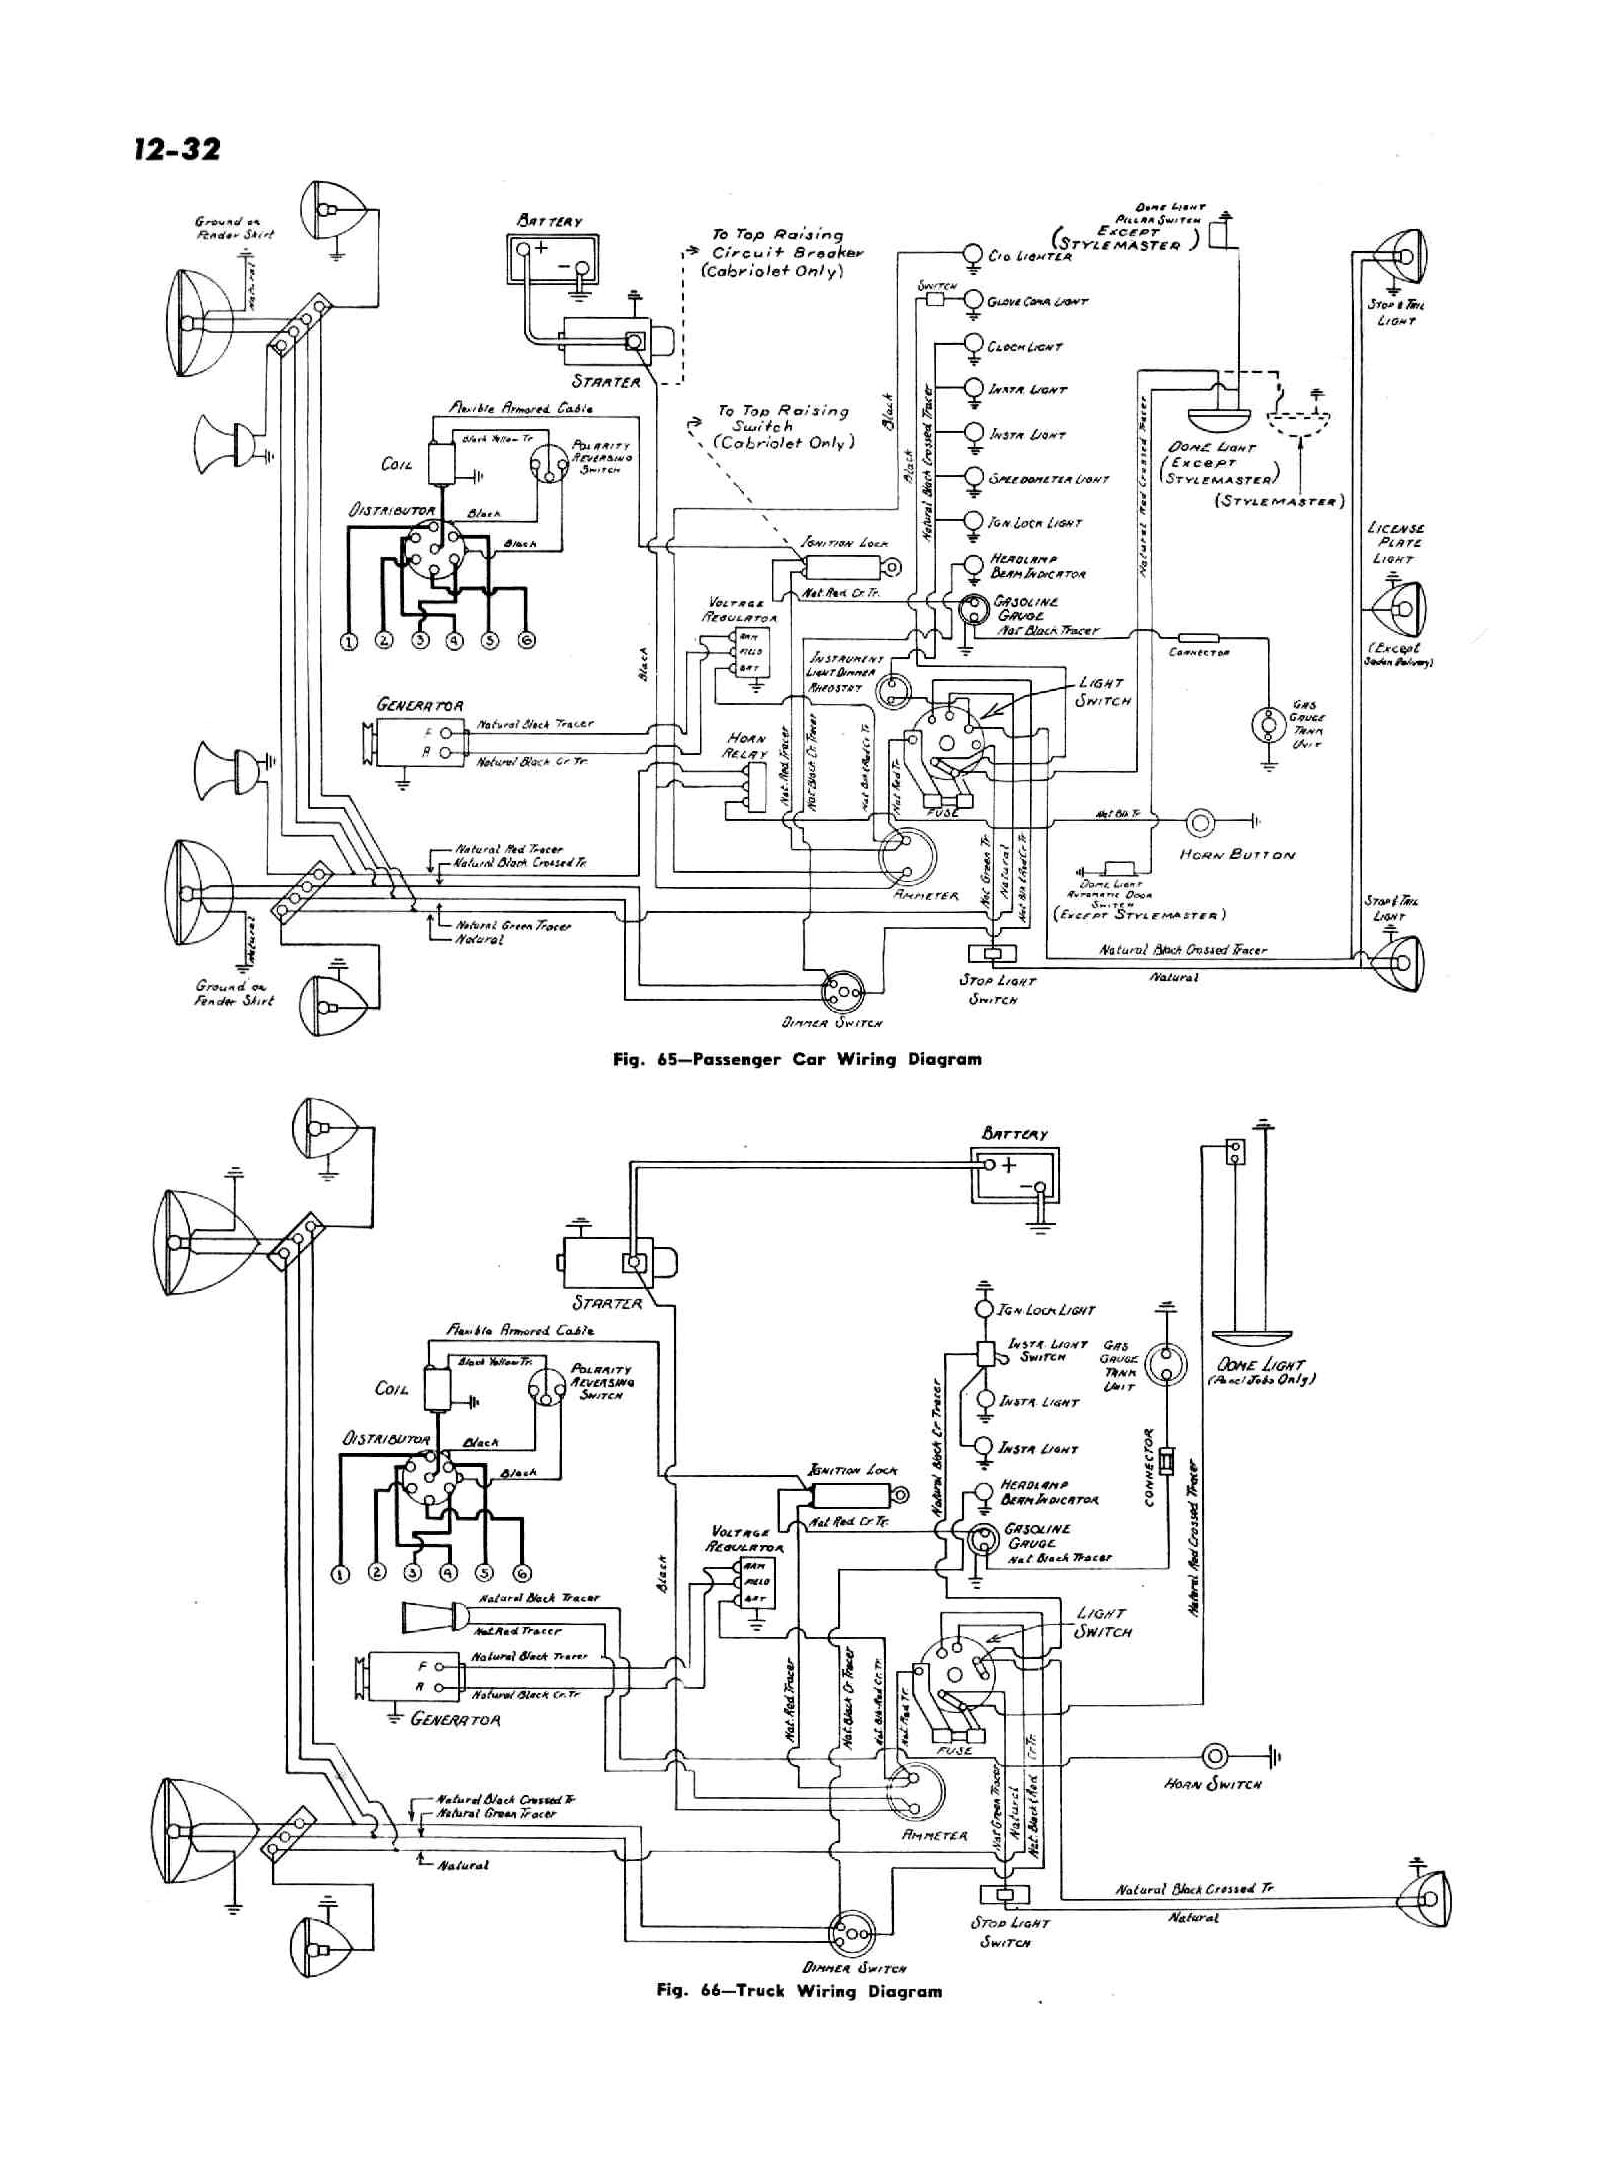 Csm on international 4900 wiring diagram